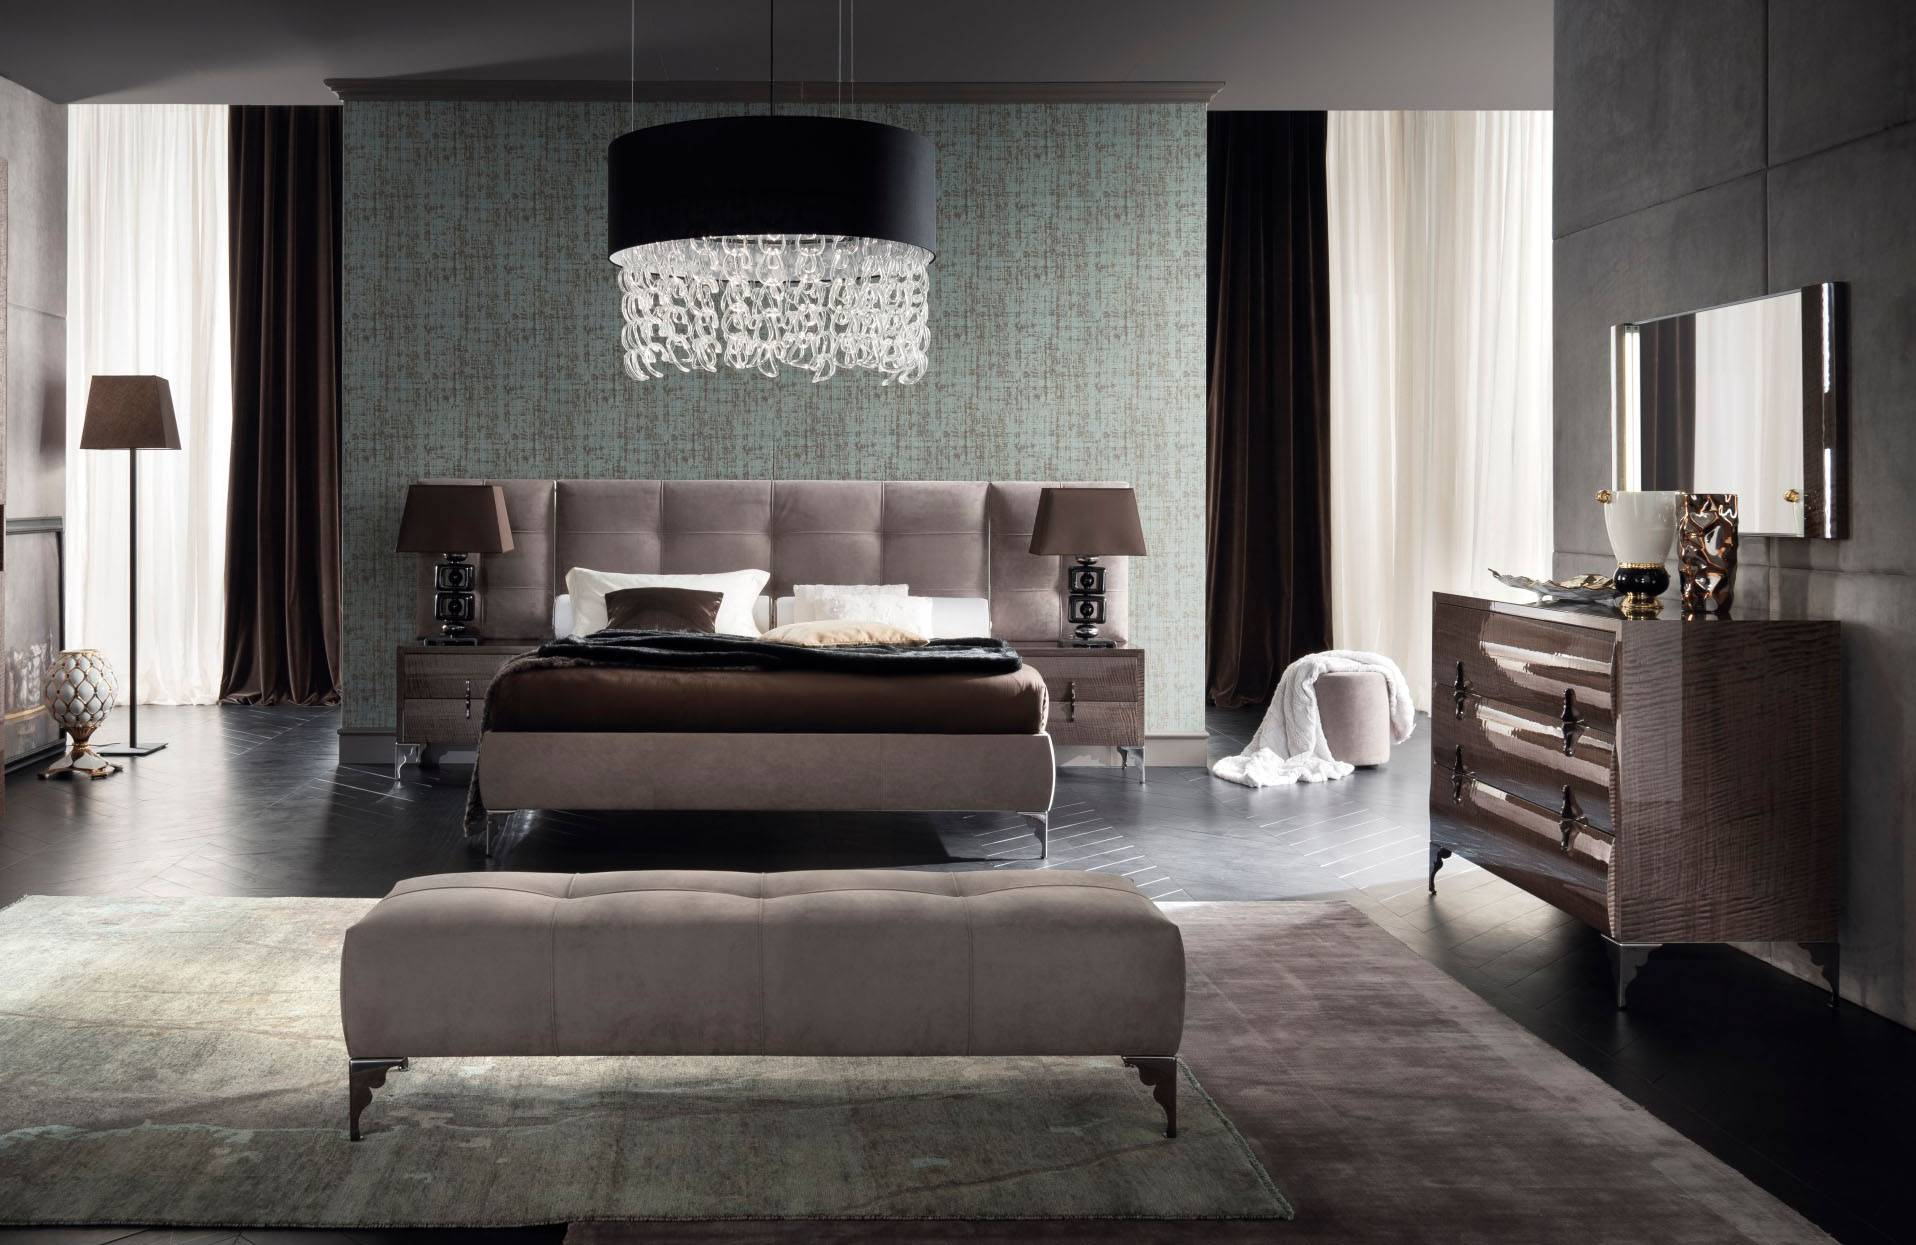 Made in italy leather contemporary master bedroom designs las vegas nevada rossetto dune visone for Contemporary master bedroom designs